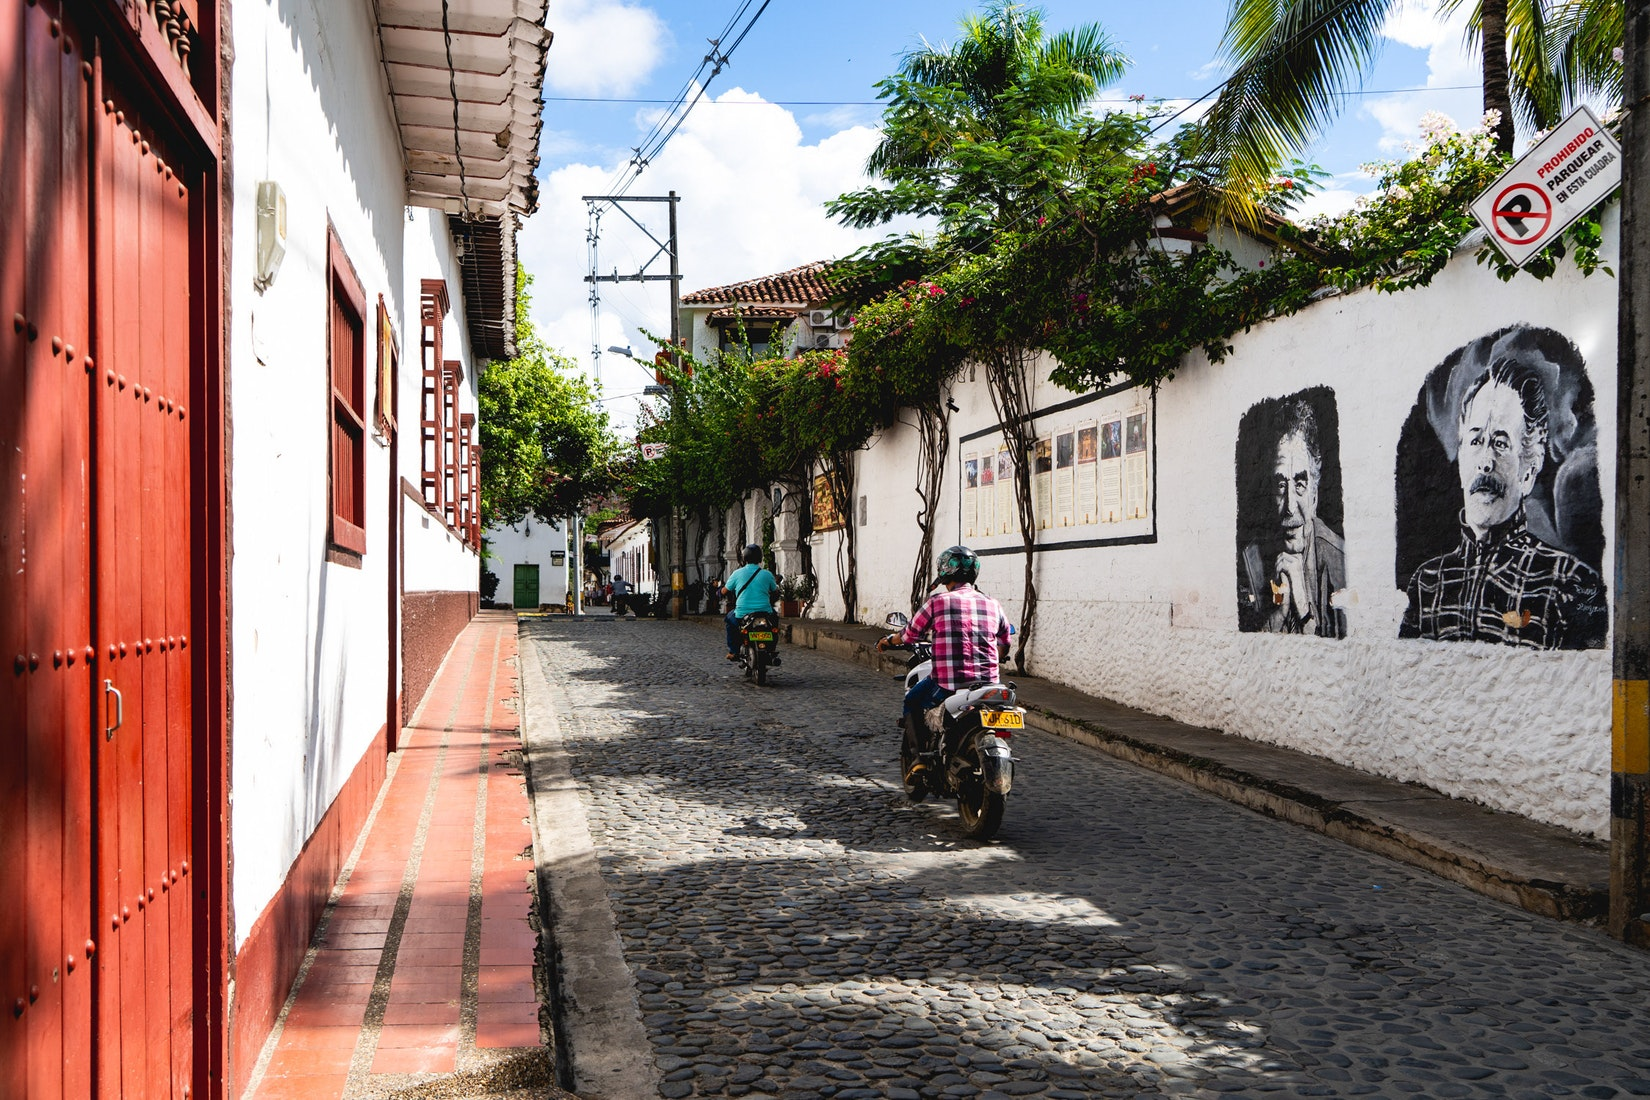 Men on motorcycles driving on cobblestone street in Colombia